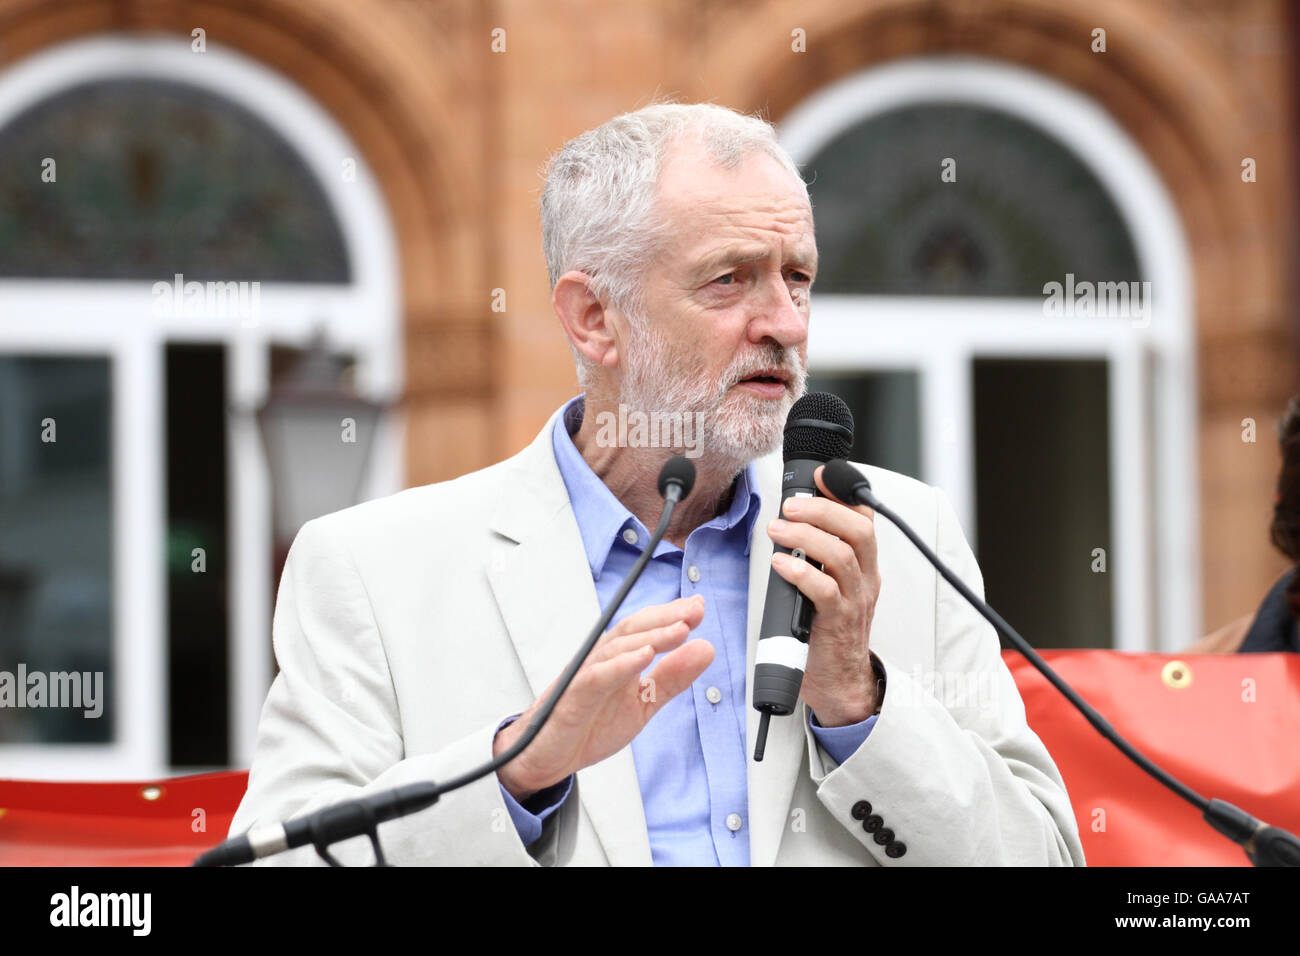 Penderyn Square, Merthyr Tydfil, South Wales, UK. 5th August, 2016. The Rt Hon Jeremy Corbyn MP, speaks to hundreds - Stock Image